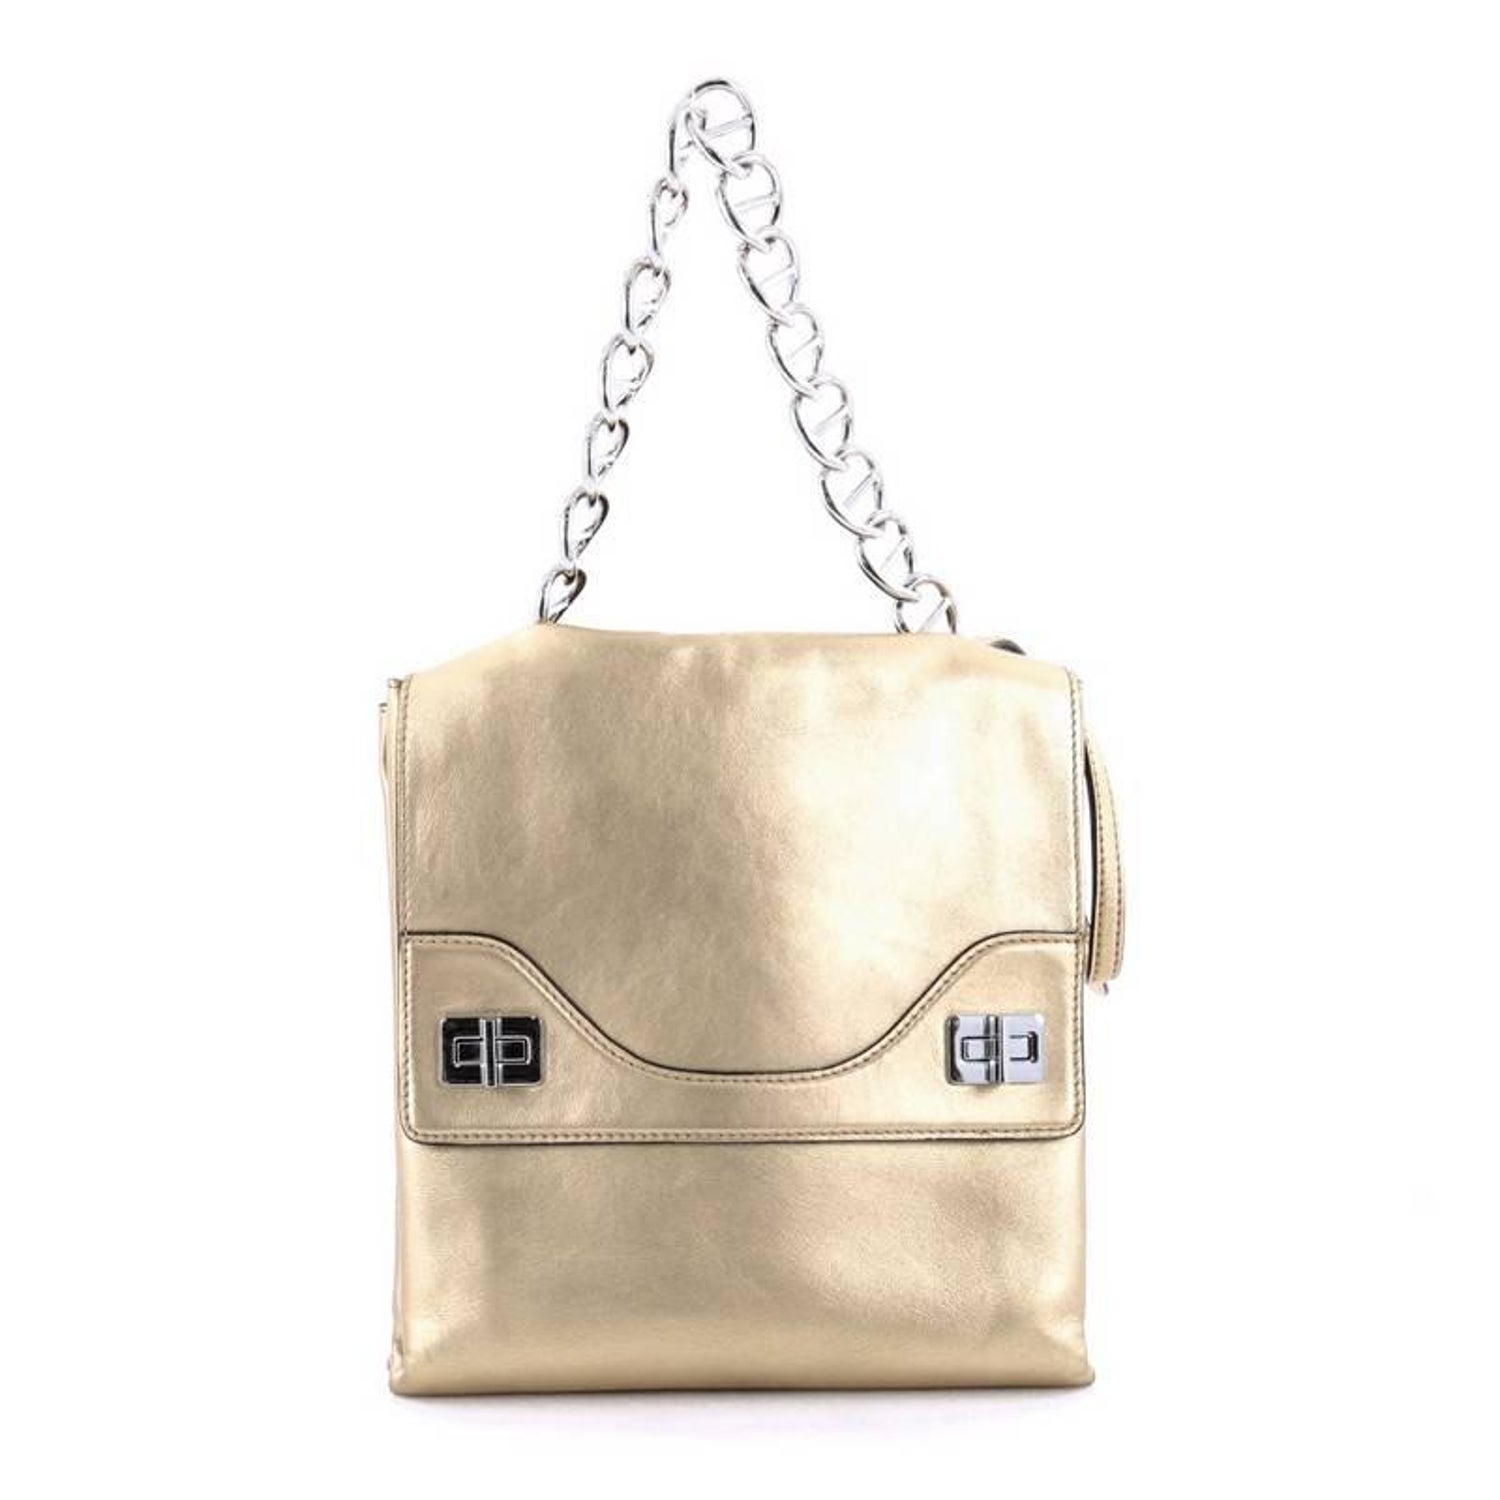 682c945f1d88 Prada Double Flap Turn Lock Shoulder Bag Leather Small at 1stdibs